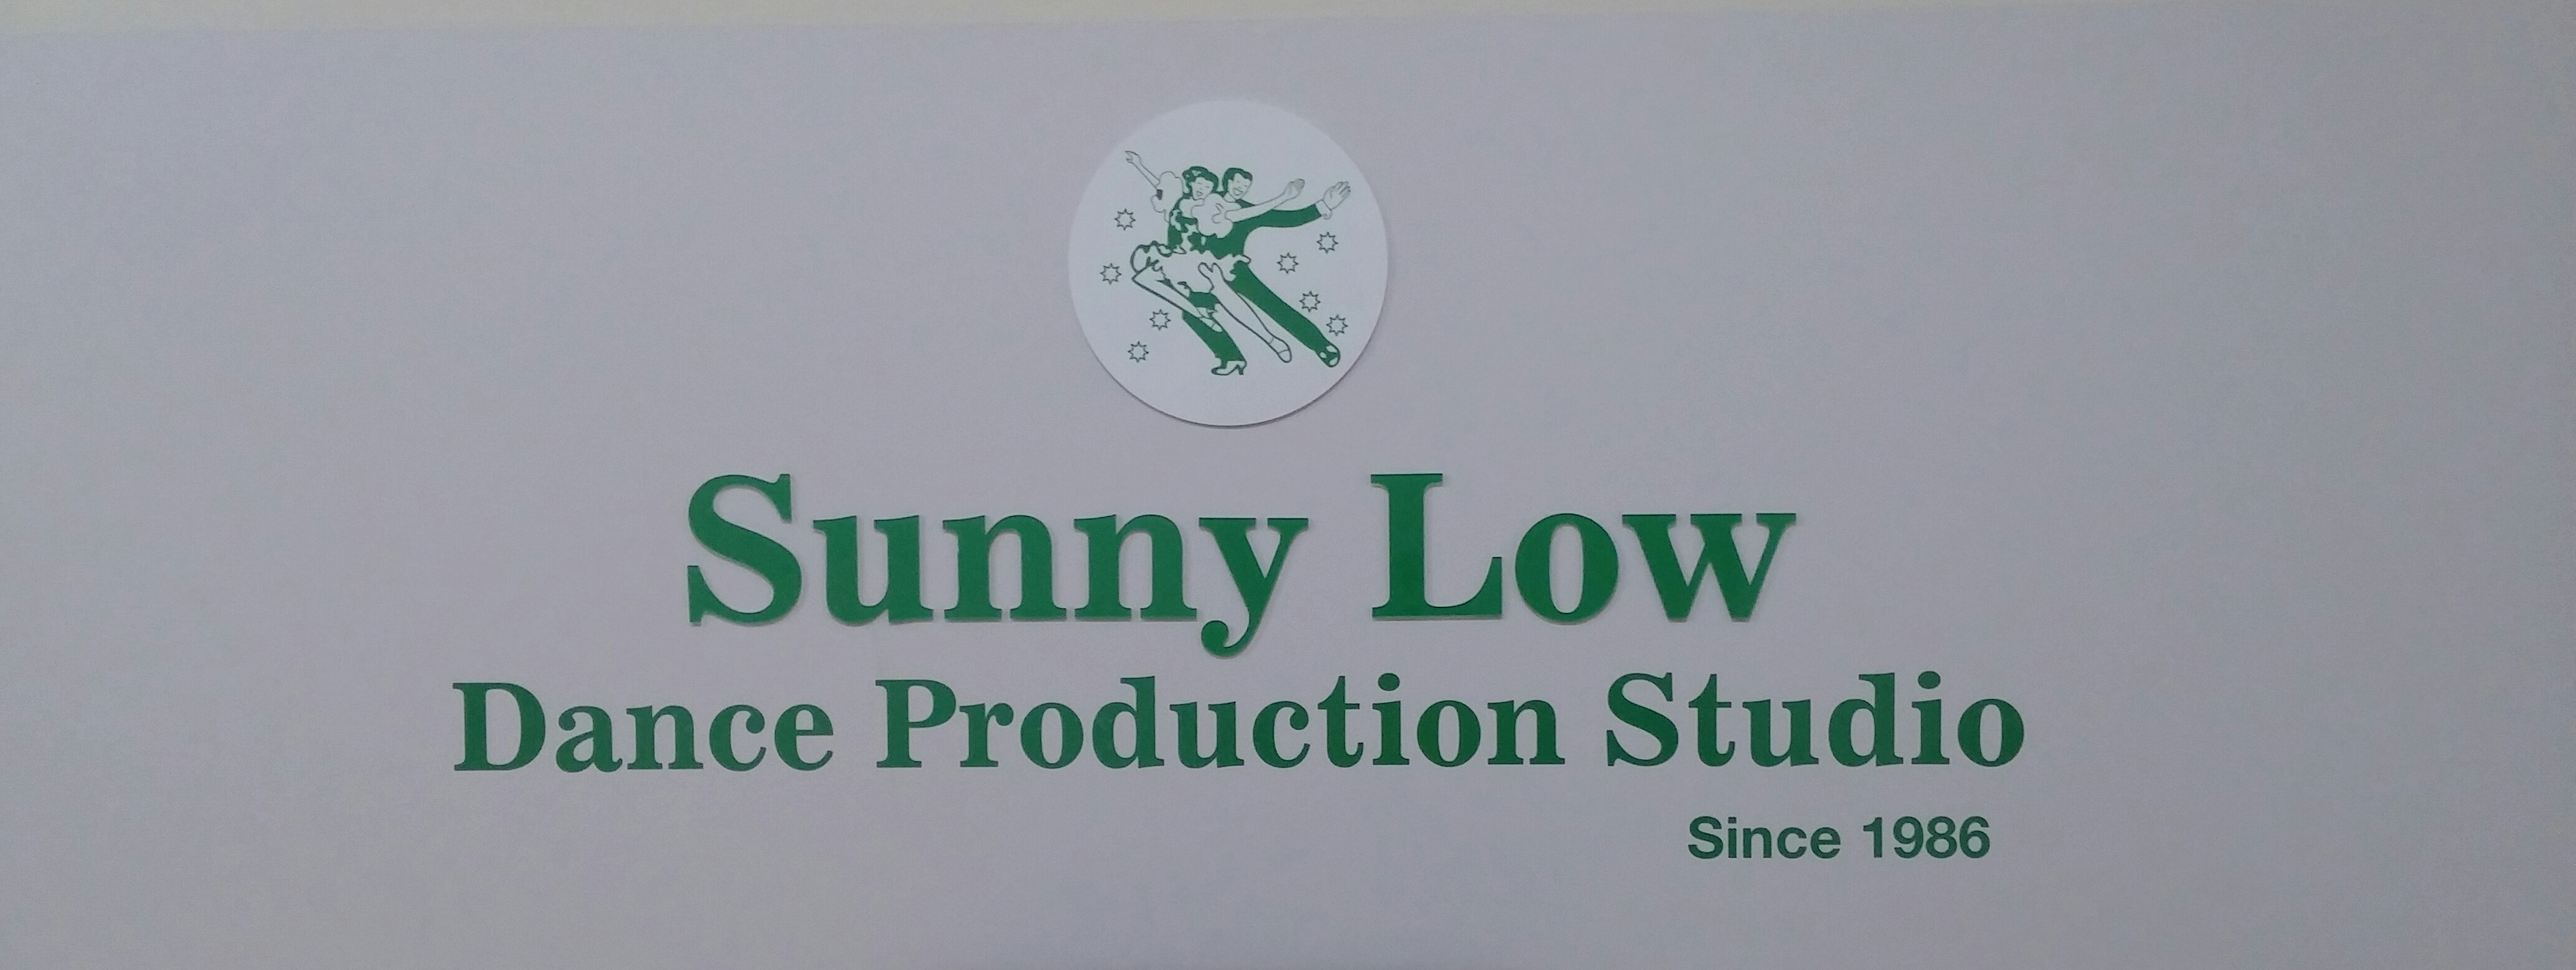 Sunny Low Dance Production Studio